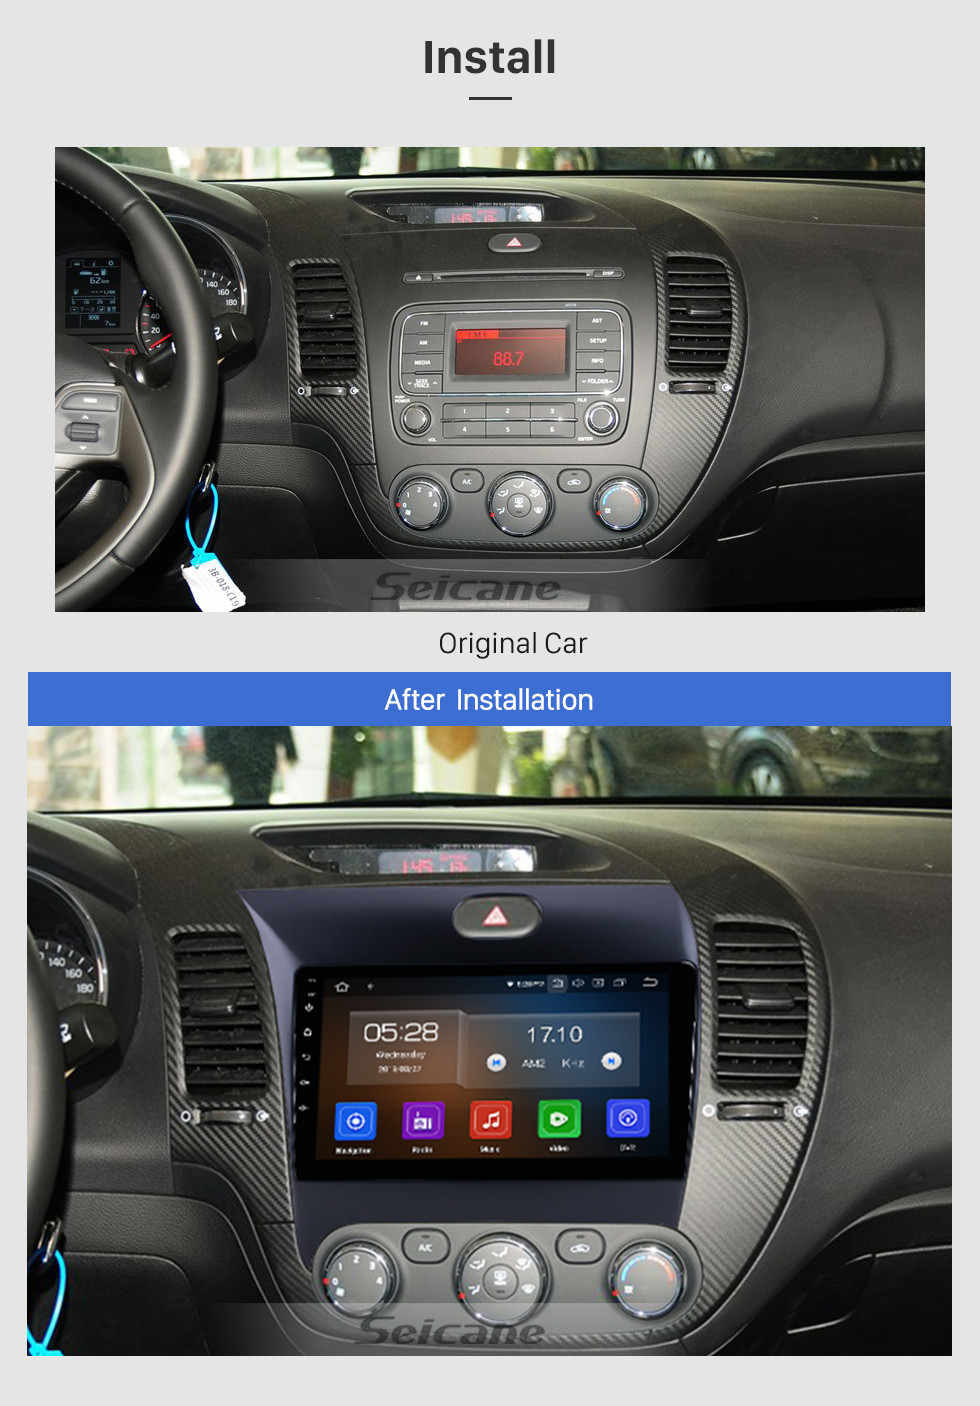 Seicane 9 inch Android 9.0 2013 2014 2015 2016 Kia k3 1024*600 Touchscreen Radio GPS Navigation System 4G WIFI Bluetooth Steering Wheel Control  support OBD2 TPMS Backup Camer a Digital TV DVR